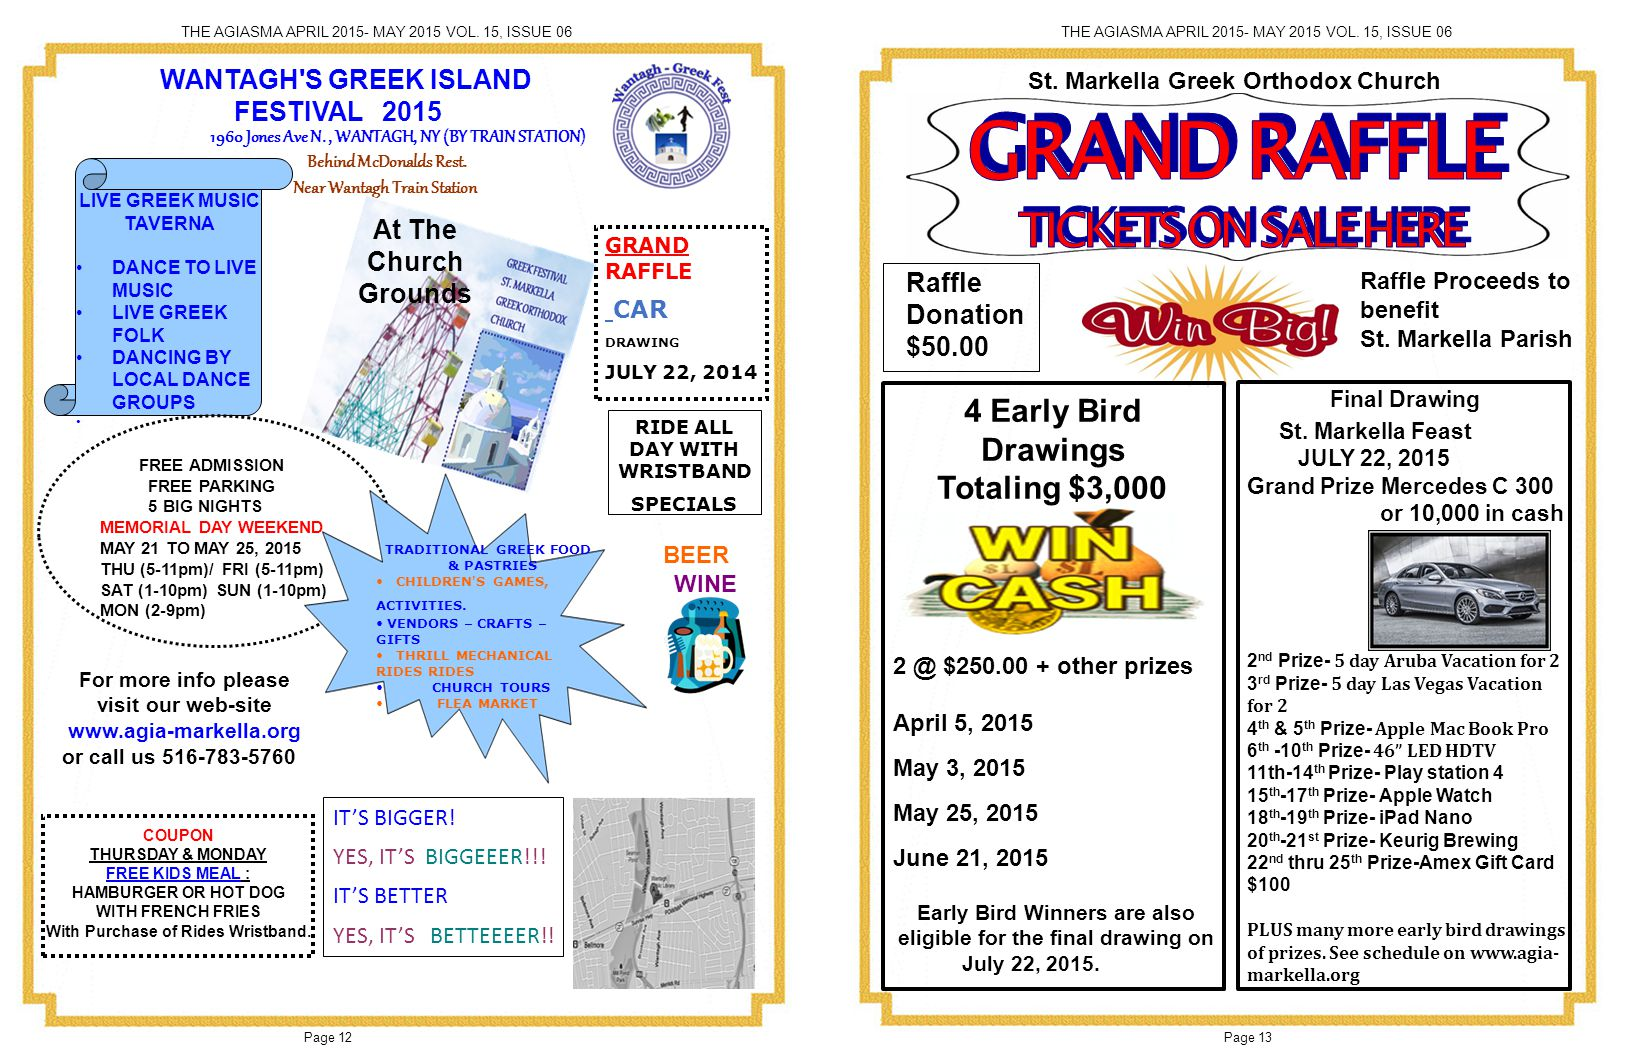 GRAND RAFFLE TICKETS ON SALE HERE Final Drawing 4 Early Bird Drawings